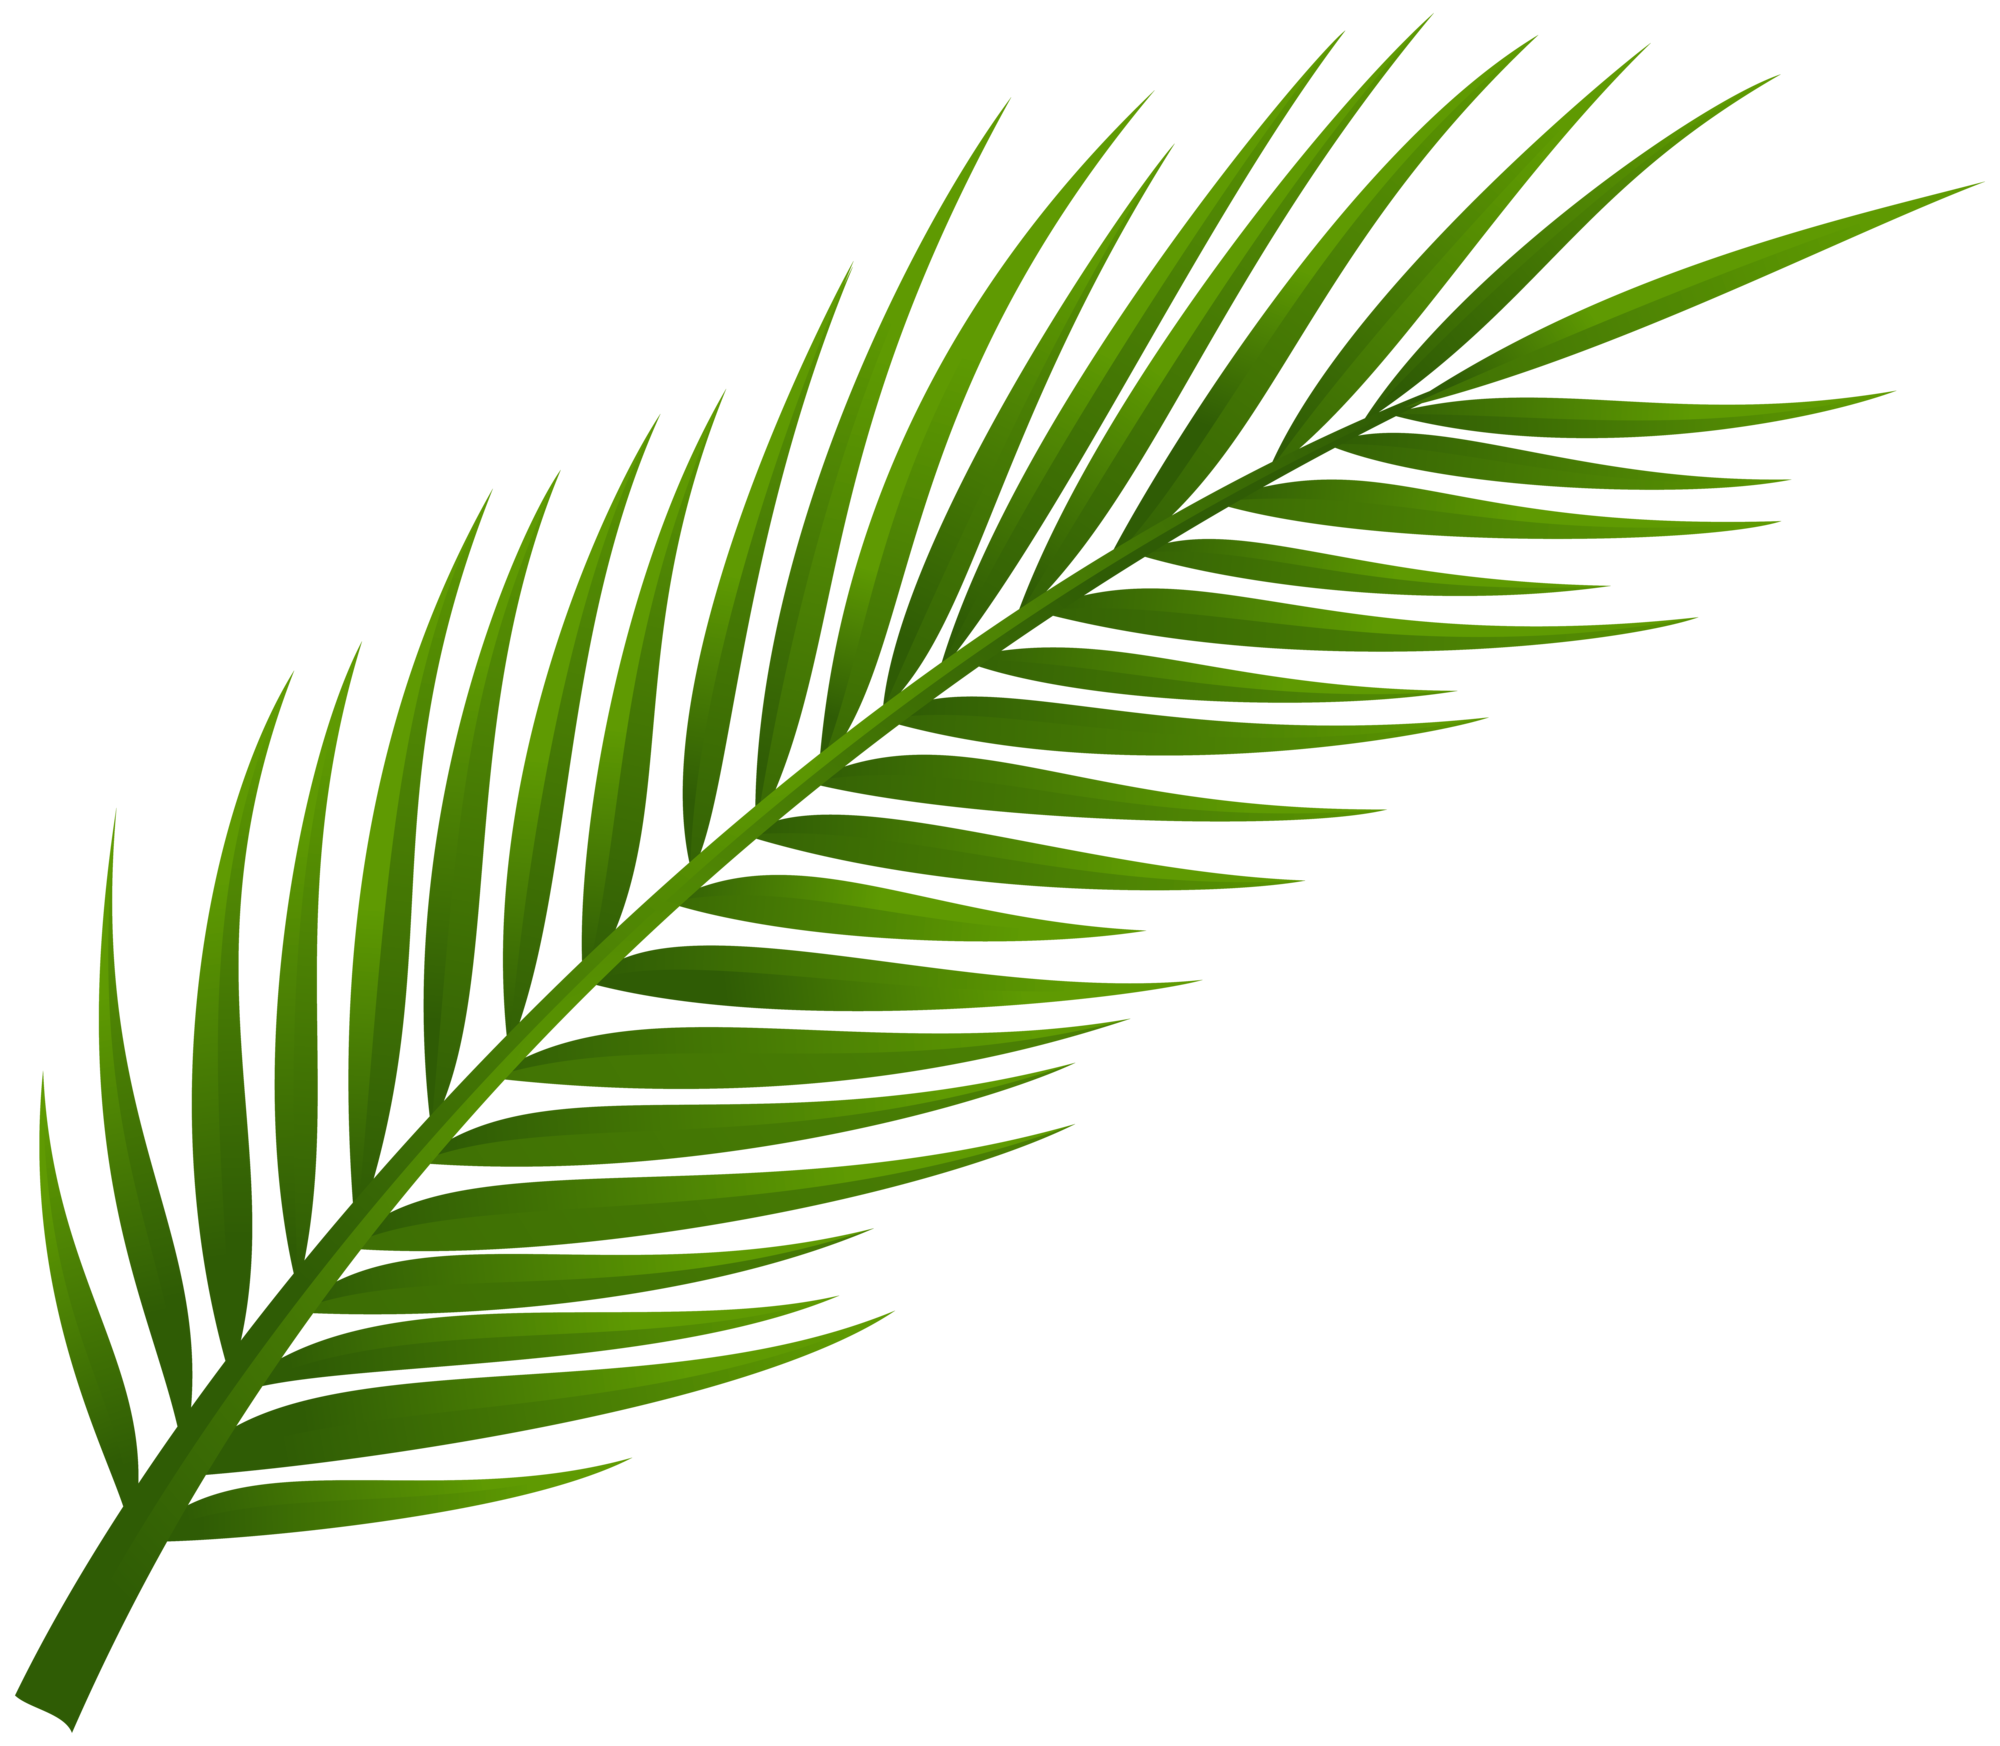 Tree clipart rice. Palm leaf png clip